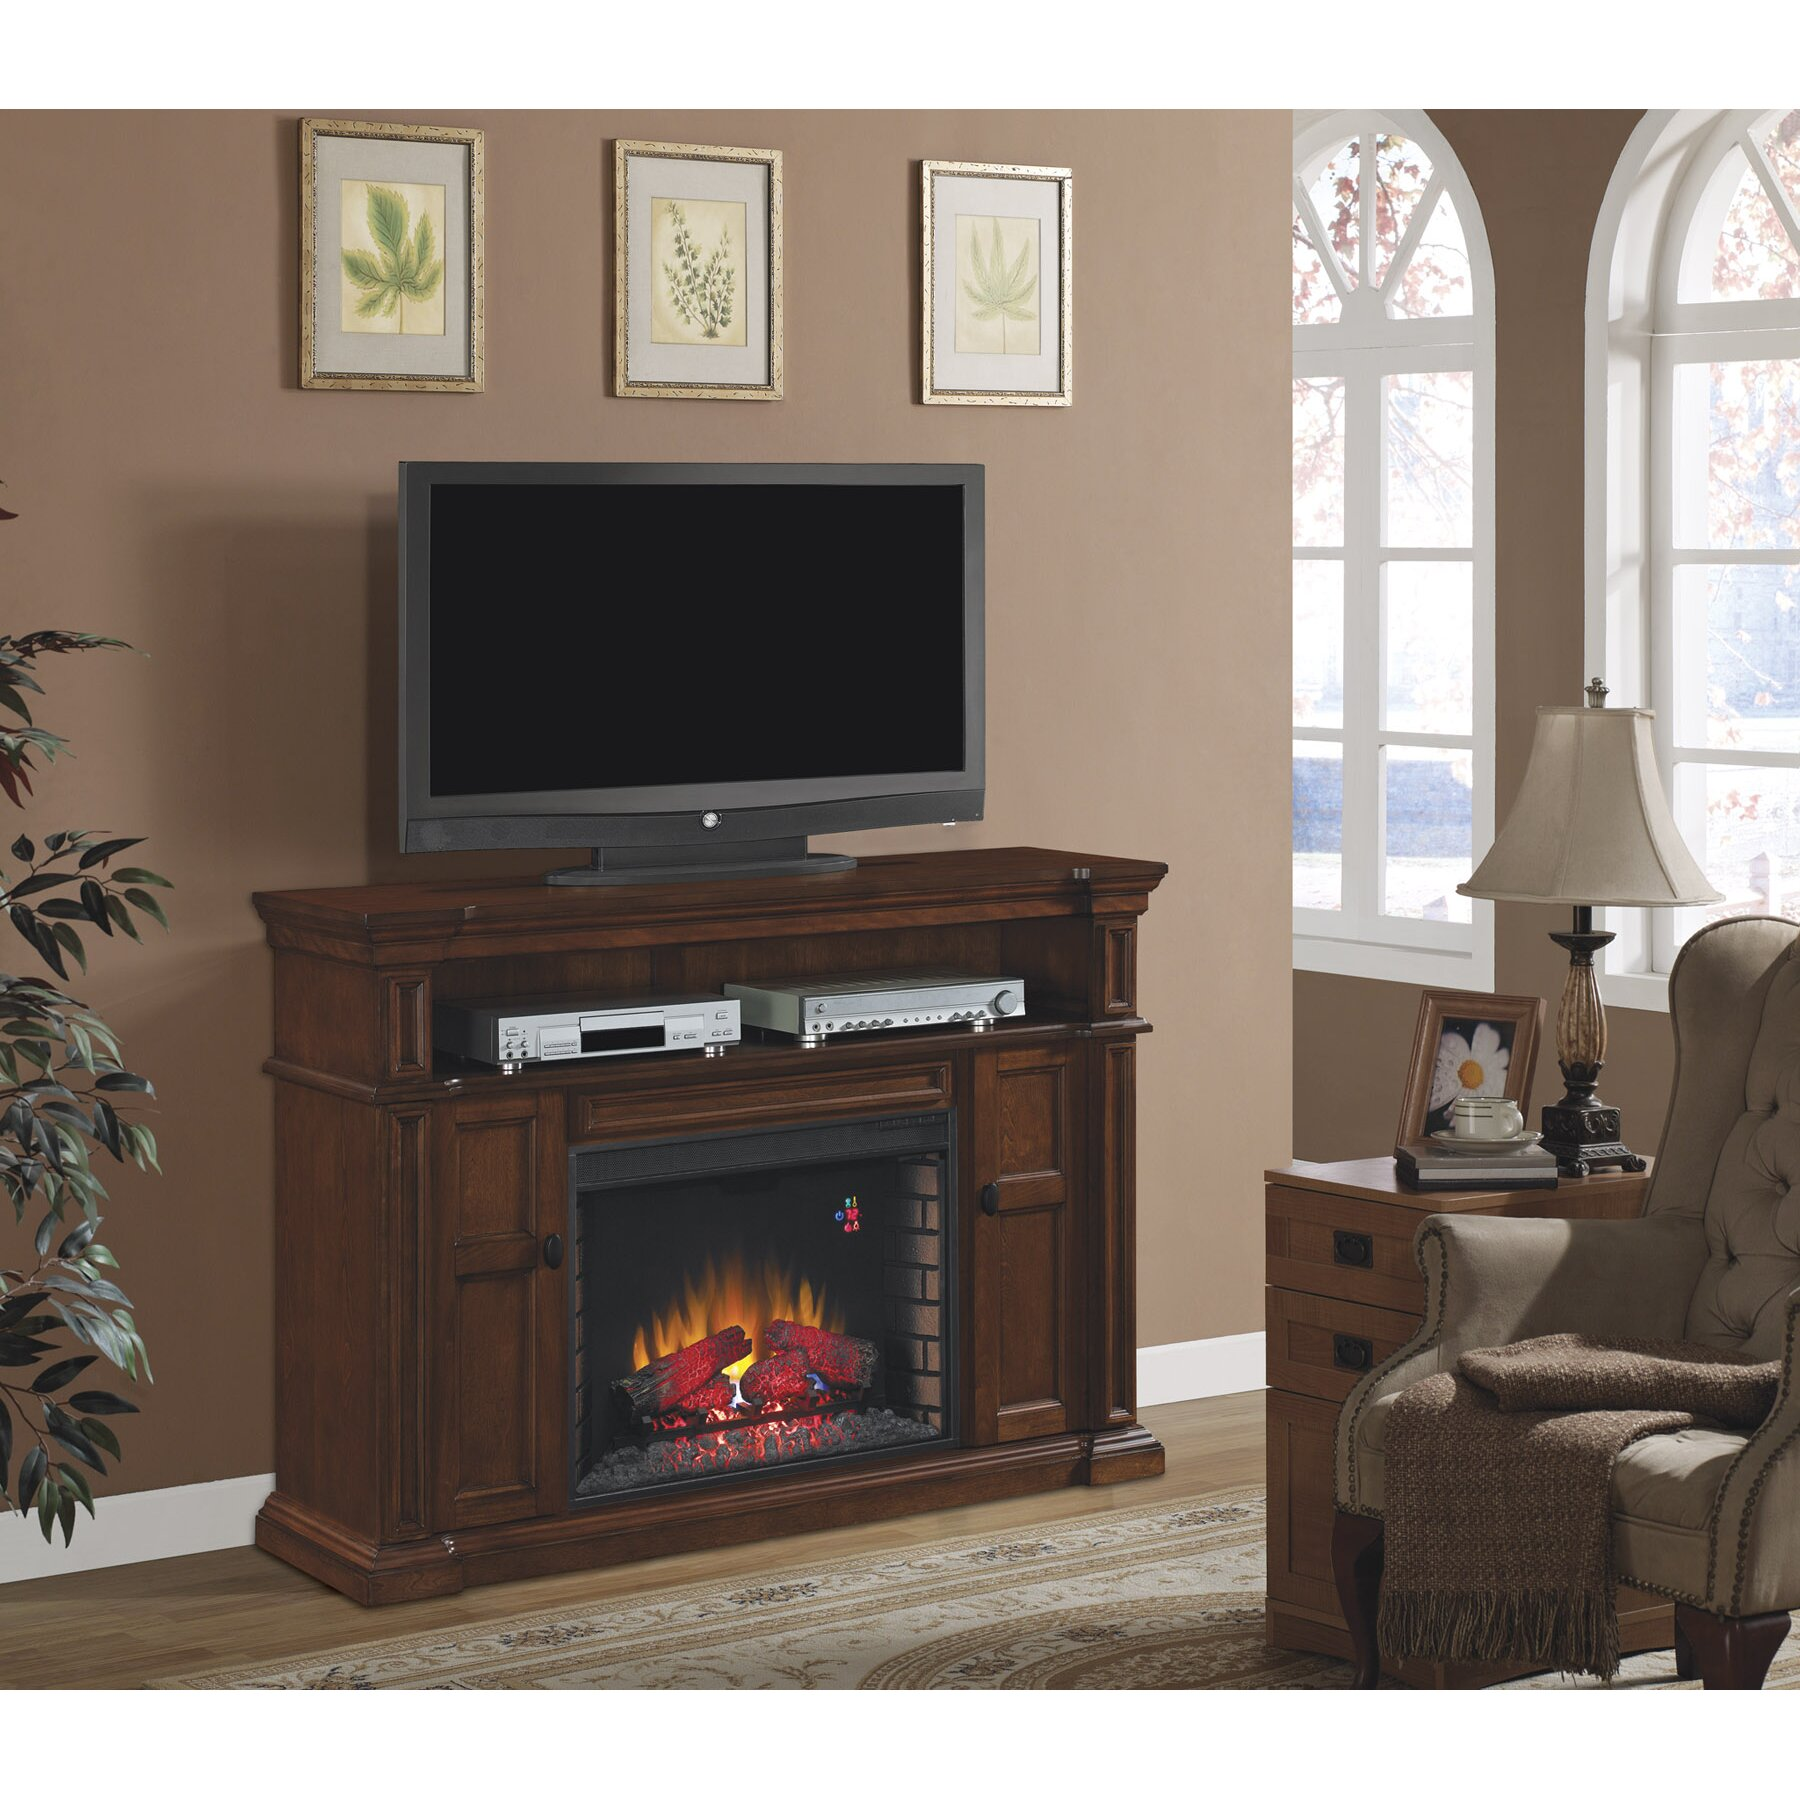 Classic Flame Wyatt Tv Stand With Infared Electric Fireplace Reviews Wayfair Supply